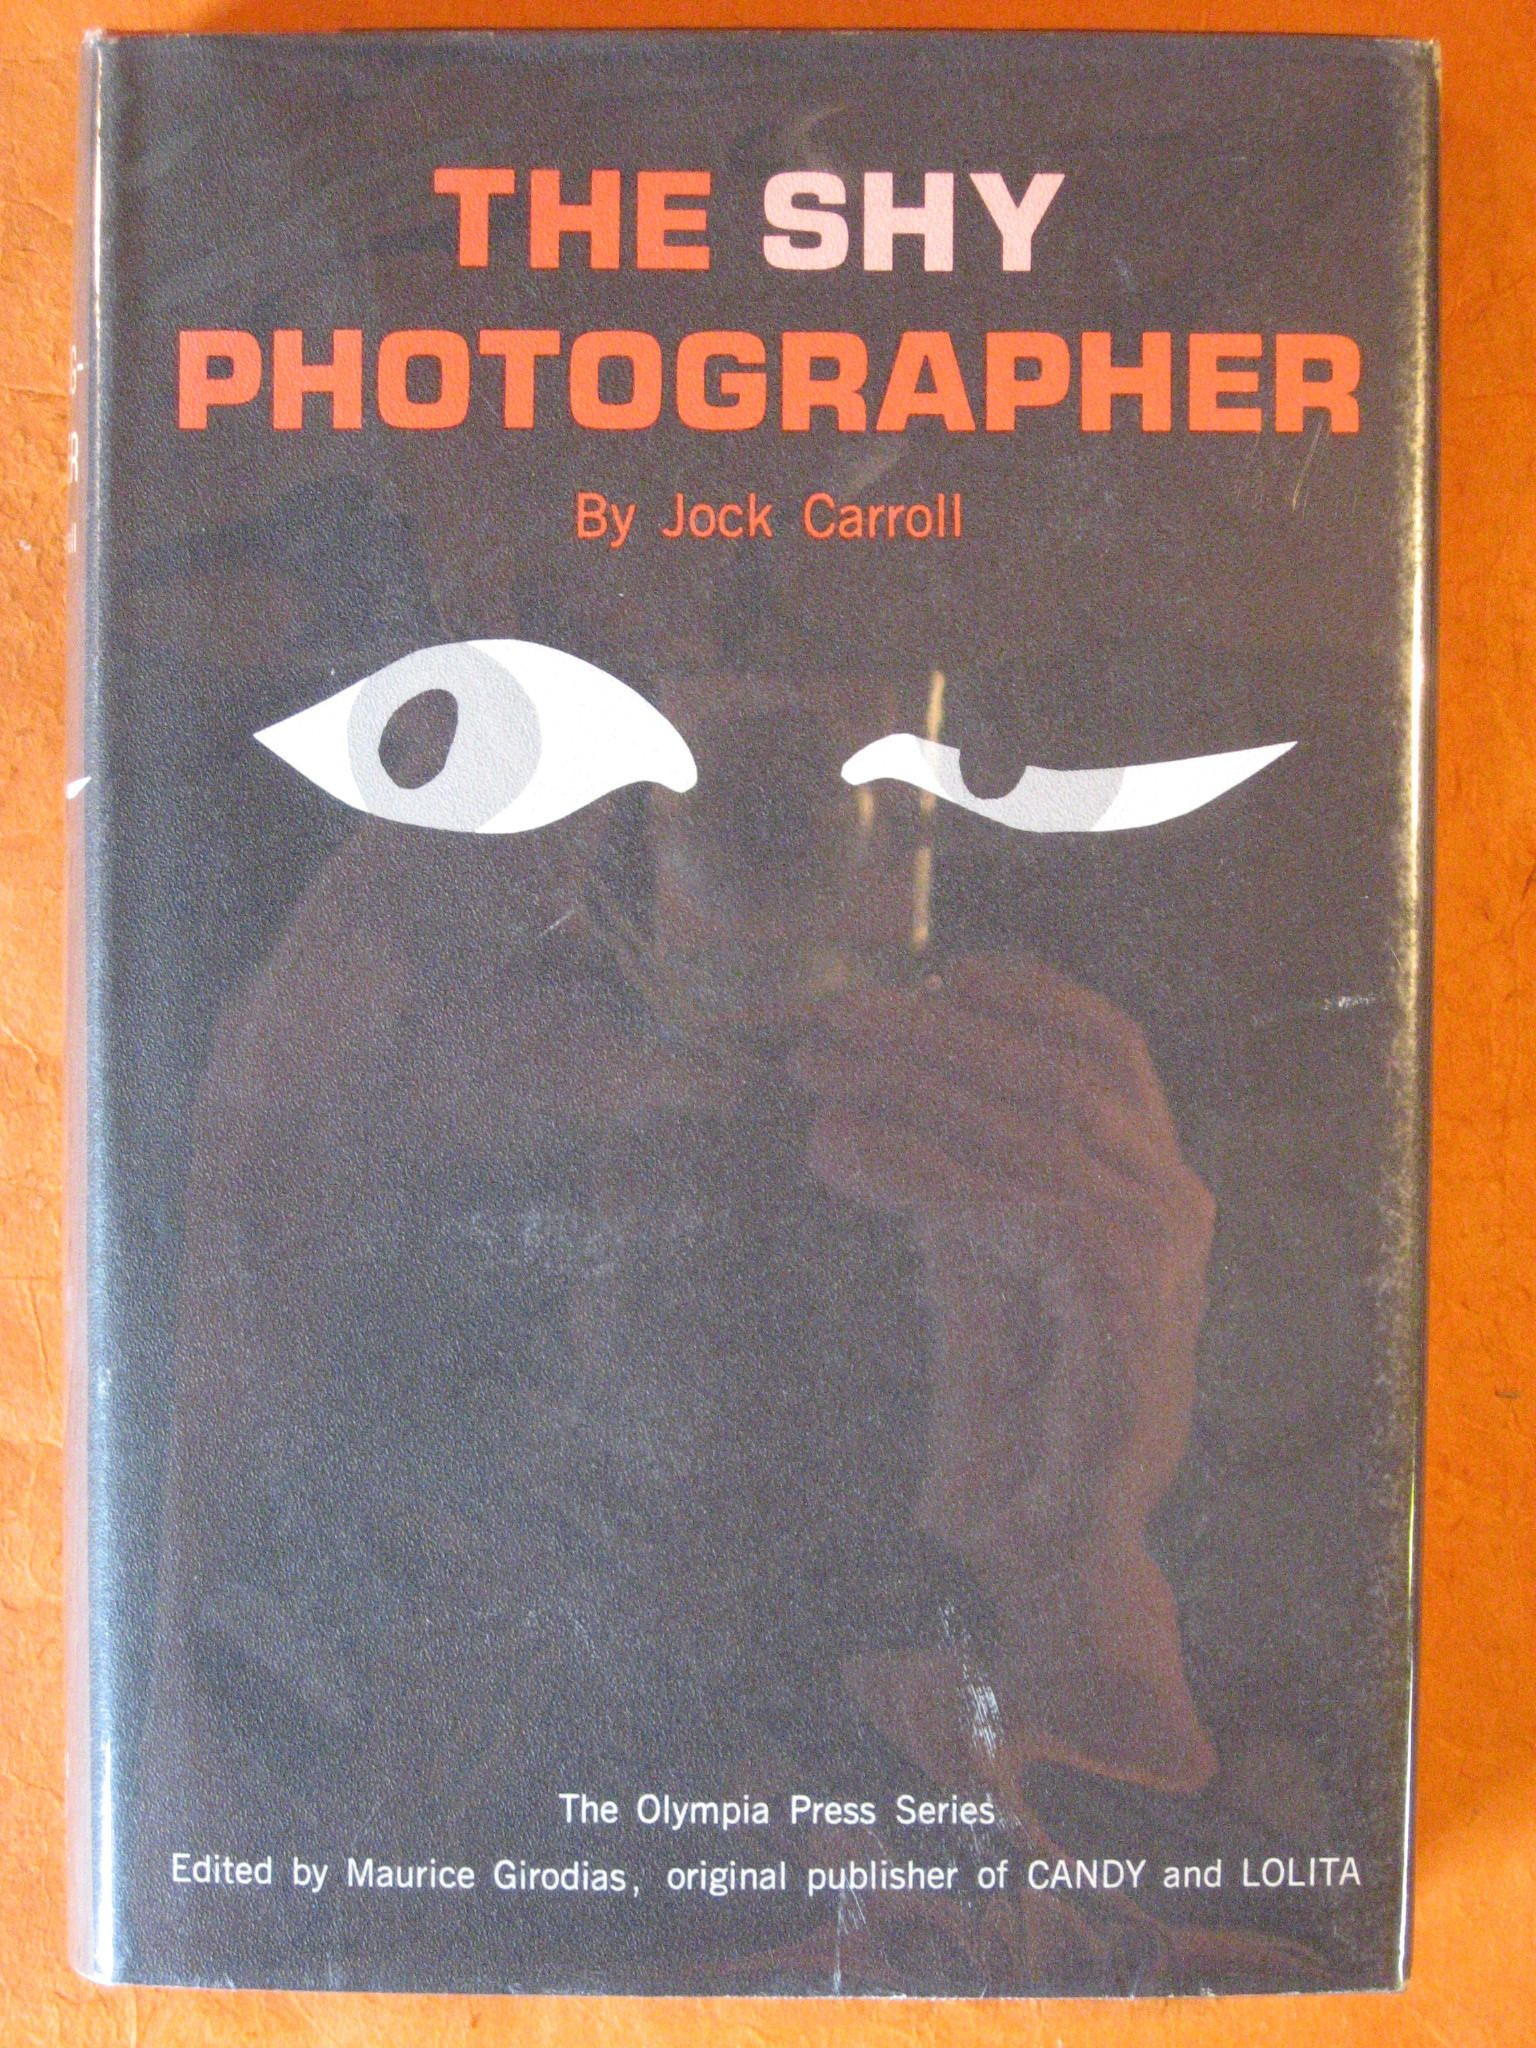 The Shy Photographer by Jock Carroll by Pistilbooks on Etsy